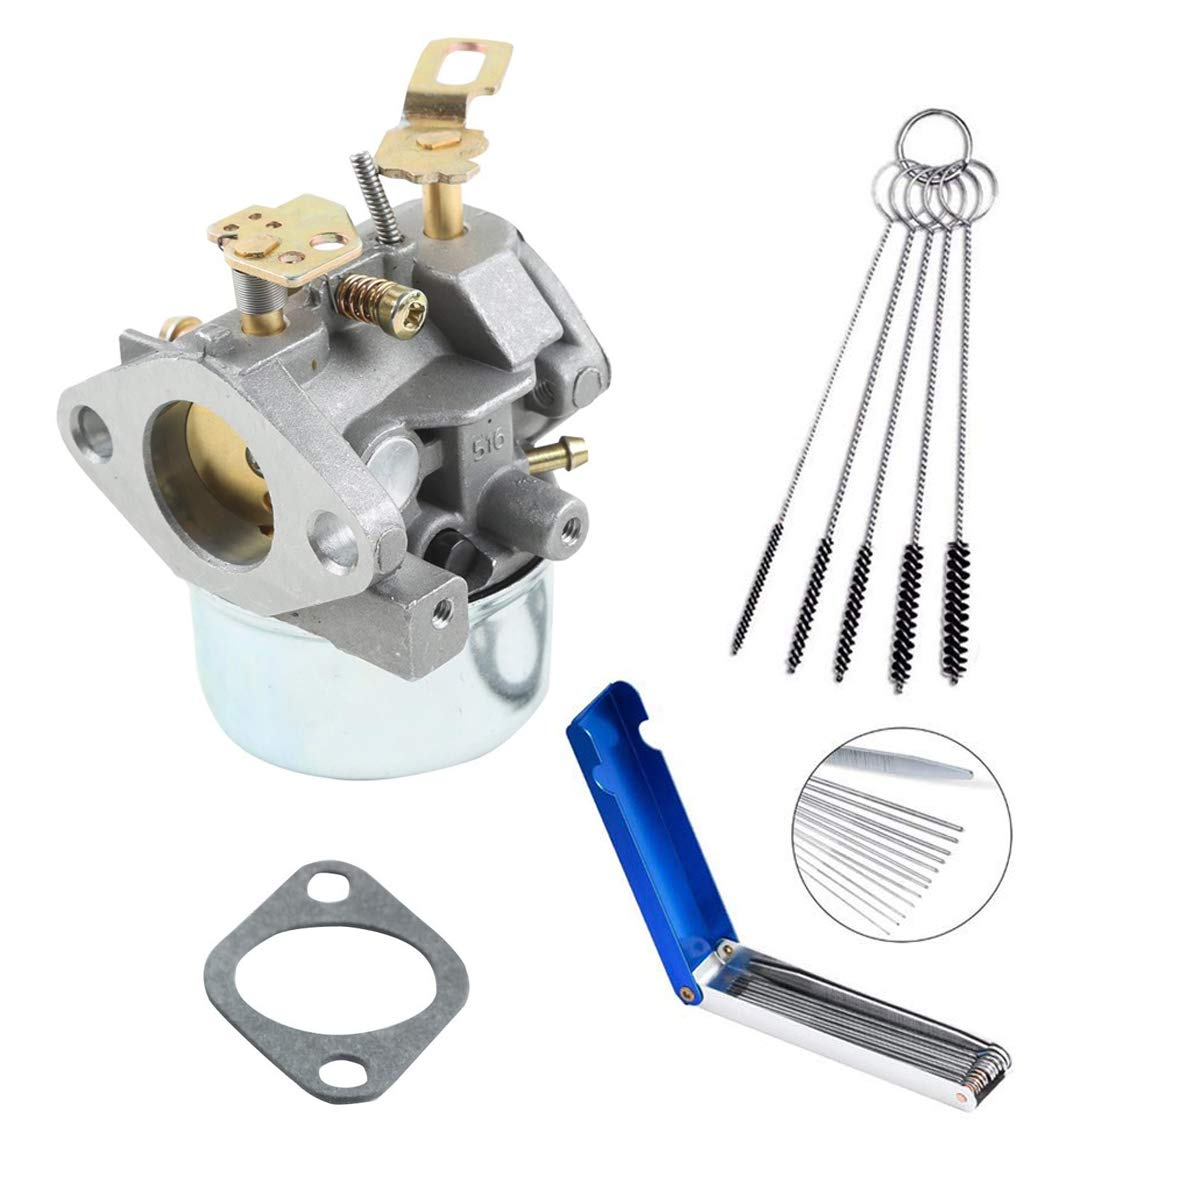 640084B Carburetor Compatible with Tecumseh HSK50 632107 640084 640084A 632107A Snow Blower HSK40 HS50 HSSK40 HS50 LH195SP with Gasket and Carbon Dirt Jet Cleaner